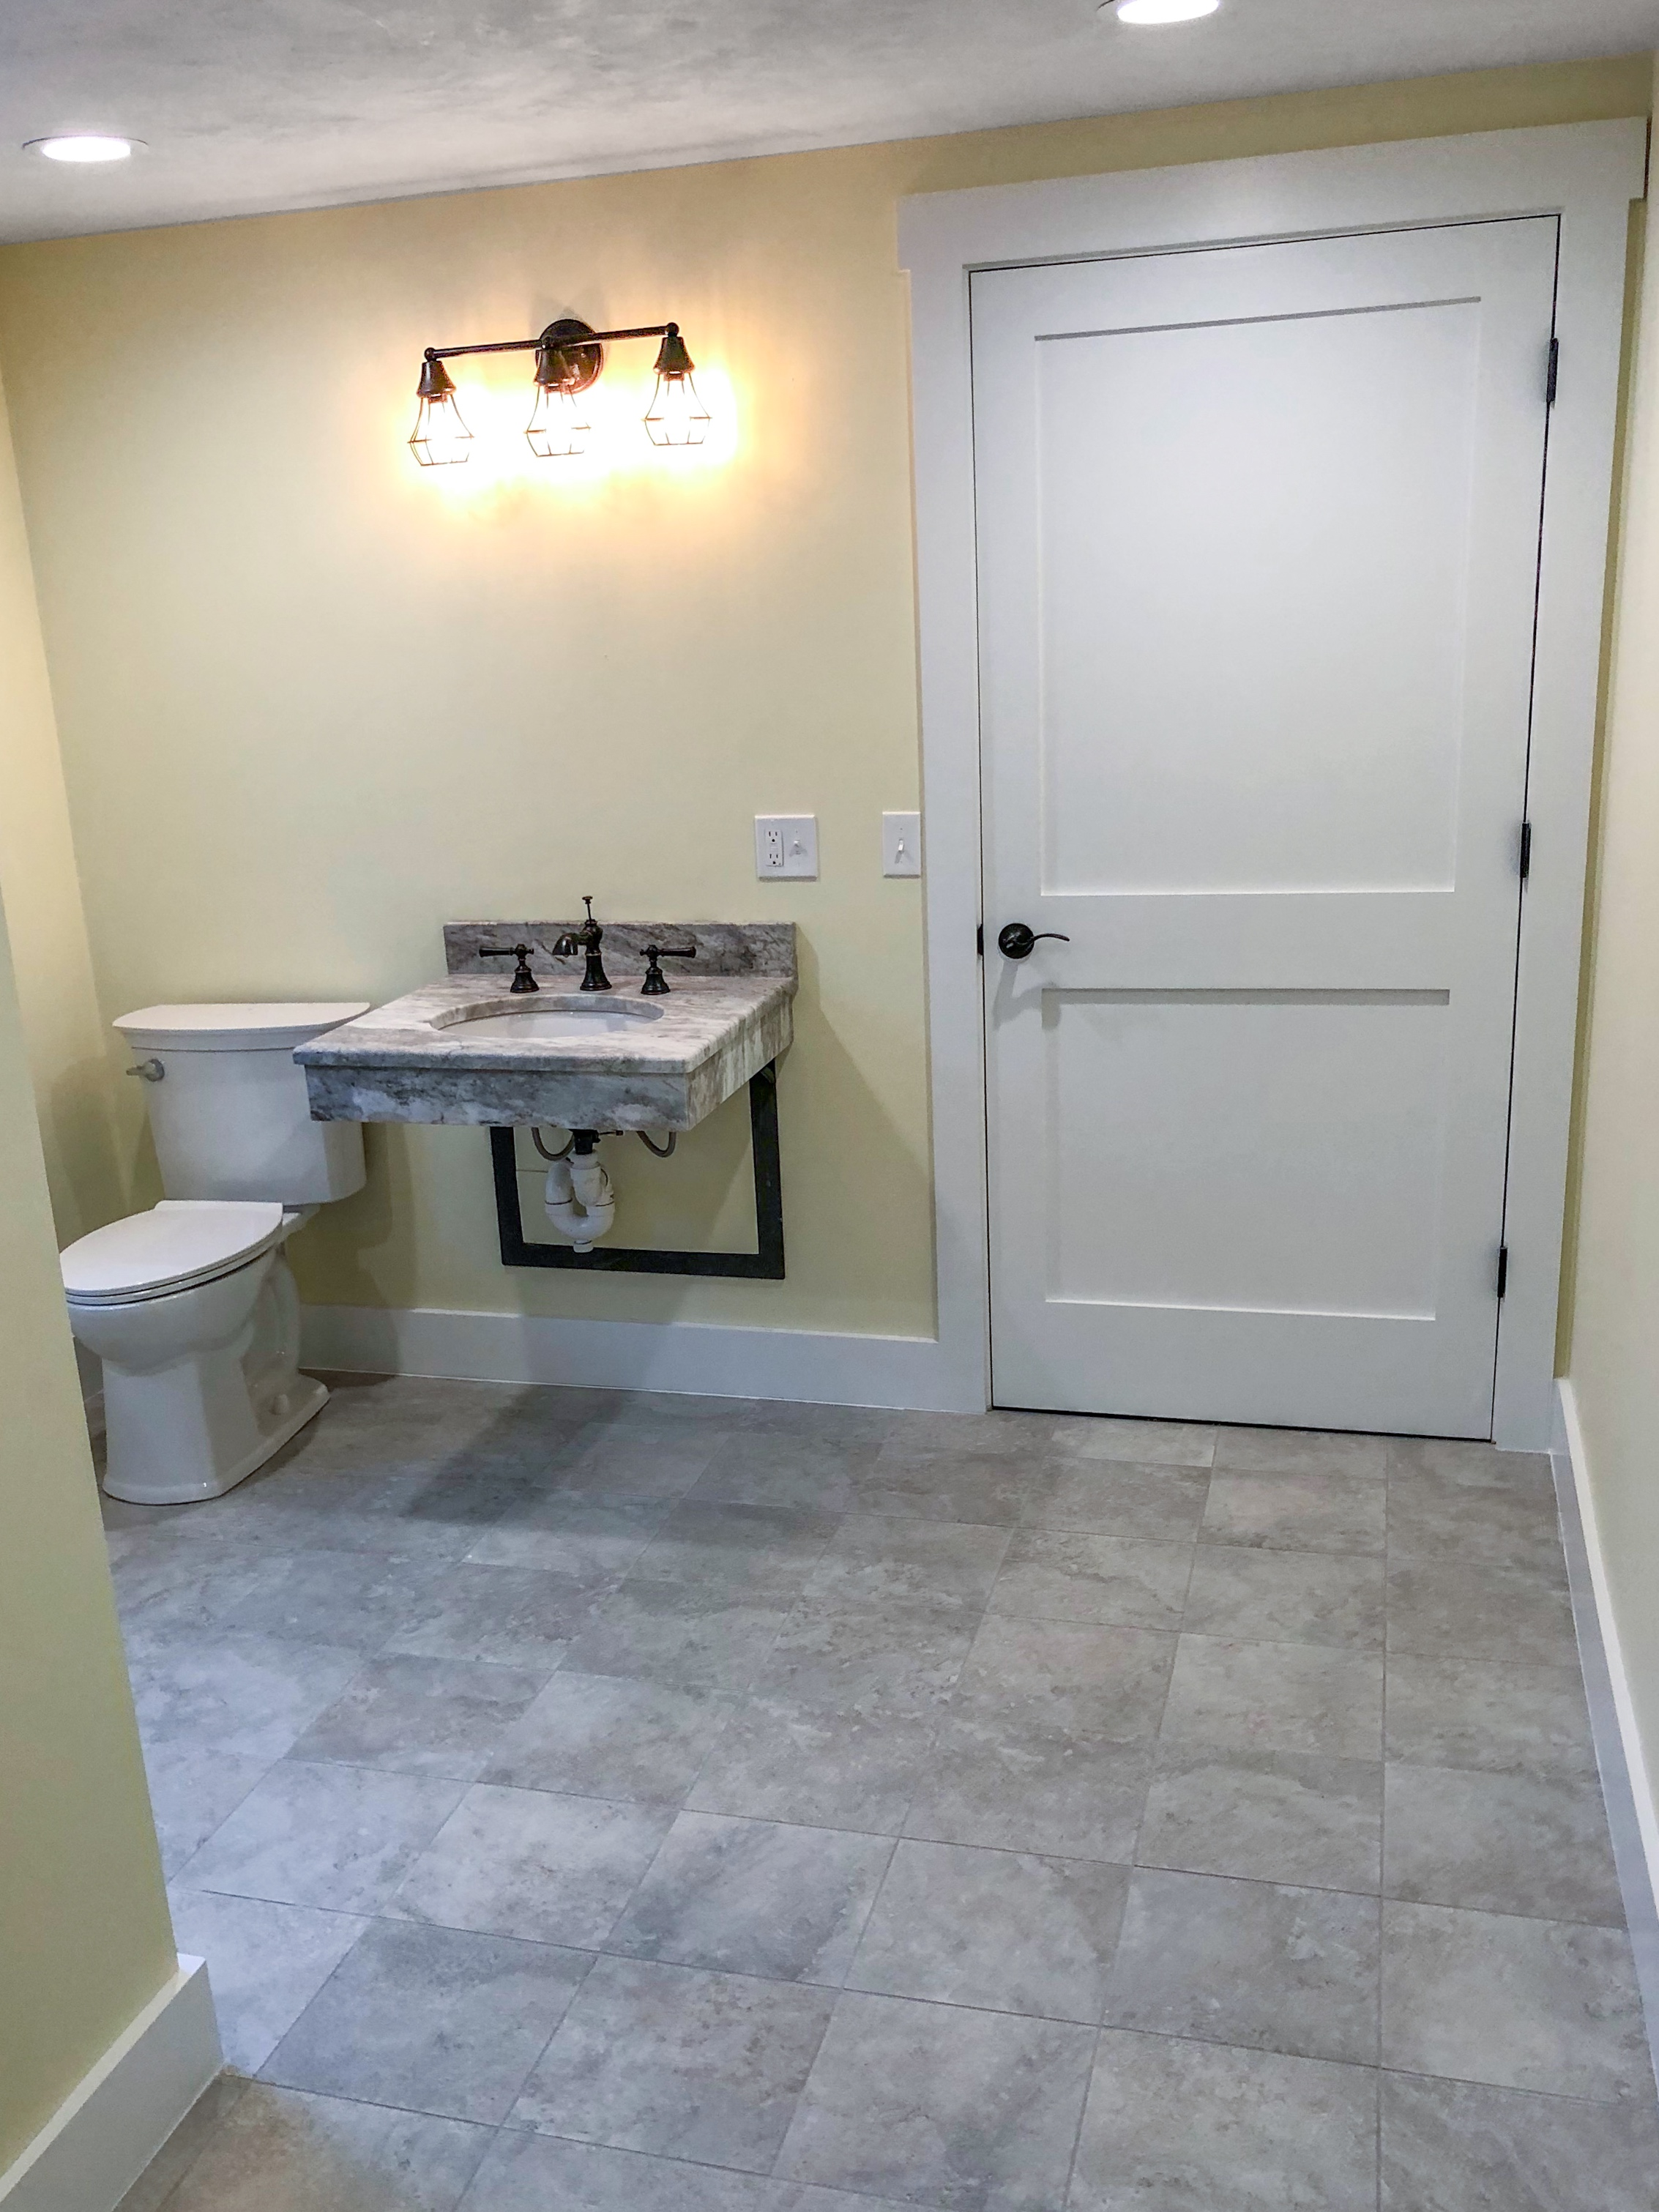 Handicap accessible bathroom.